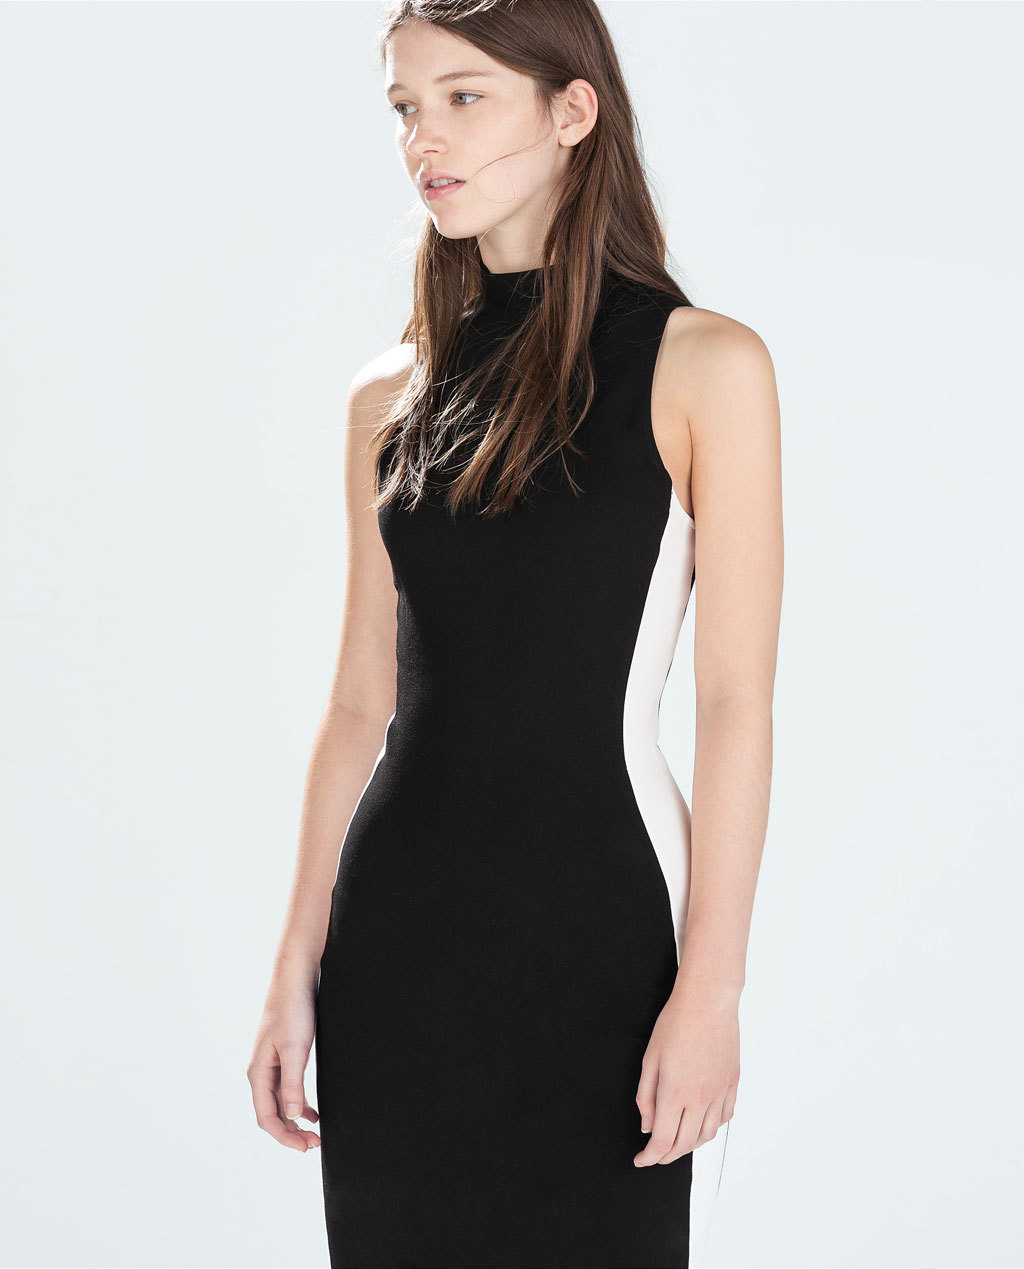 Tube Dress With A Side Stripe - length: below the knee; fit: tight; sleeve style: sleeveless; neckline: high neck; style: bodycon; secondary colour: white; predominant colour: black; occasions: casual, evening, creative work; fibres: viscose/rayon - stretch; sleeve length: sleeveless; texture group: jersey - clingy; pattern type: fabric; pattern size: light/subtle; pattern: colourblock; season: a/w 2014; wardrobe: highlight